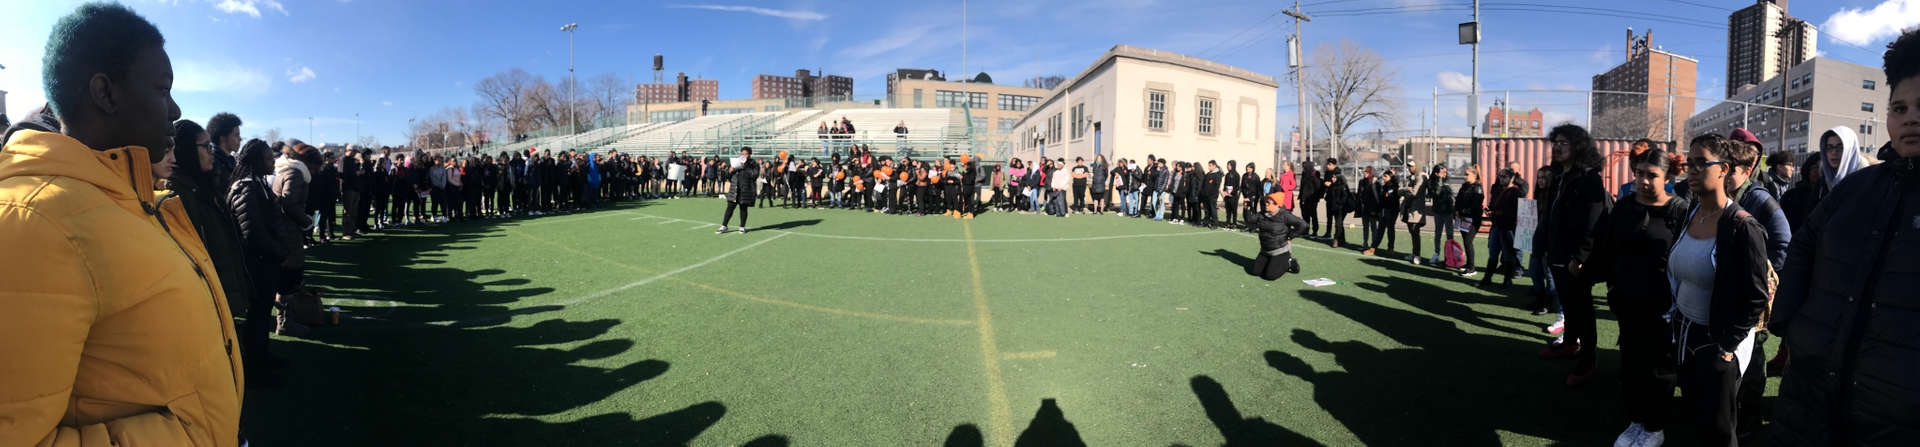 Panorama shot of a crowd on the sports field